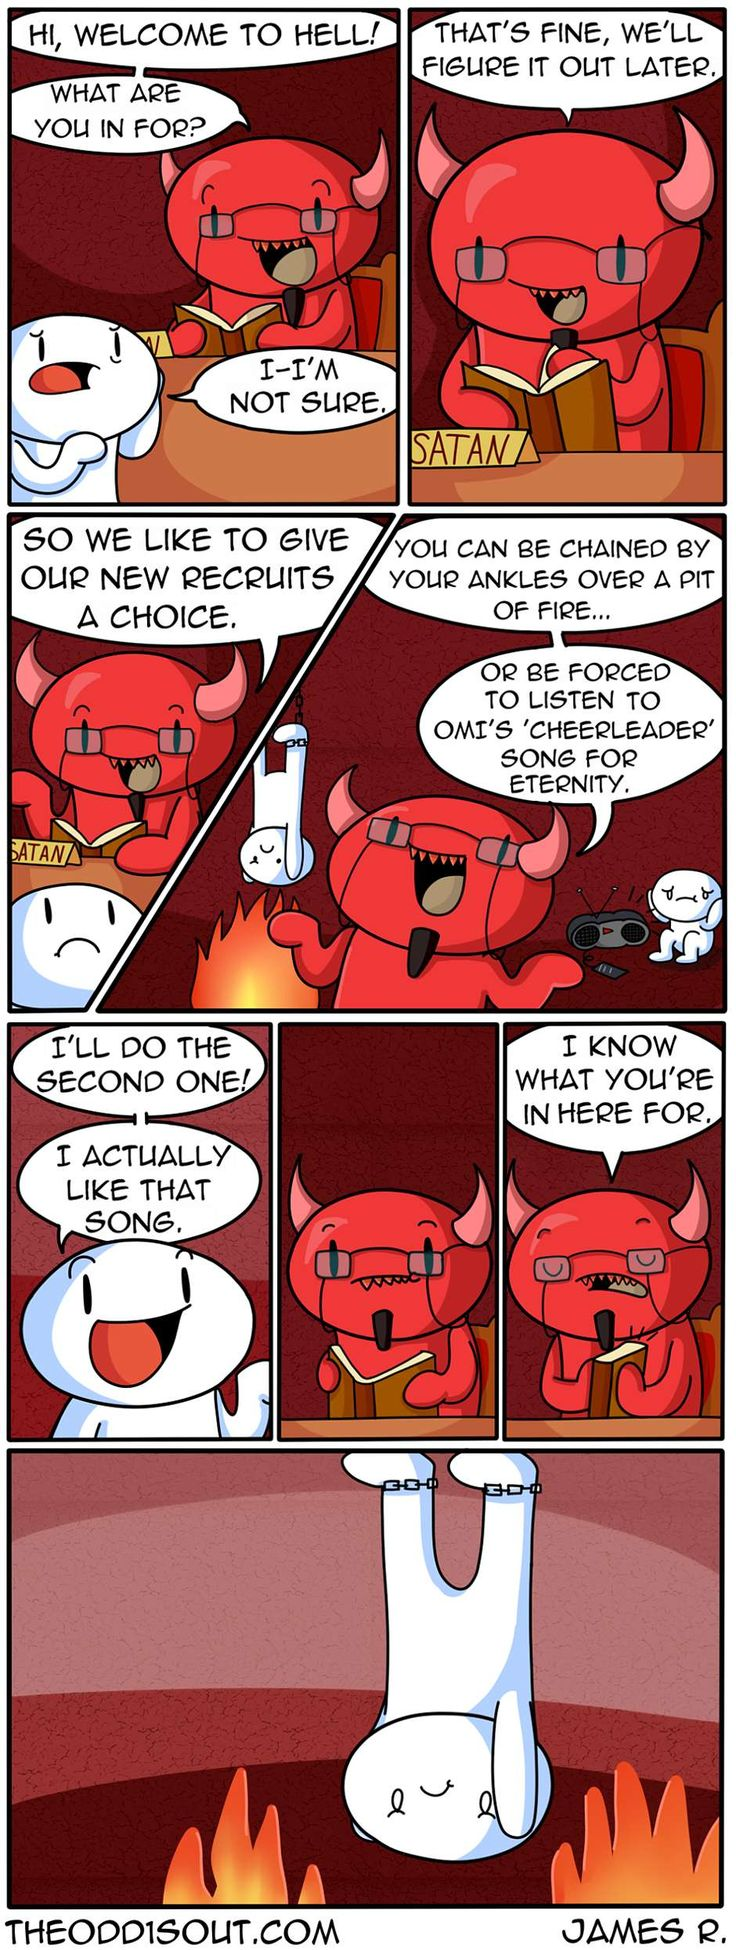 Theodd1sout :: Choose Your Torture | Tapastic Comics - image 1